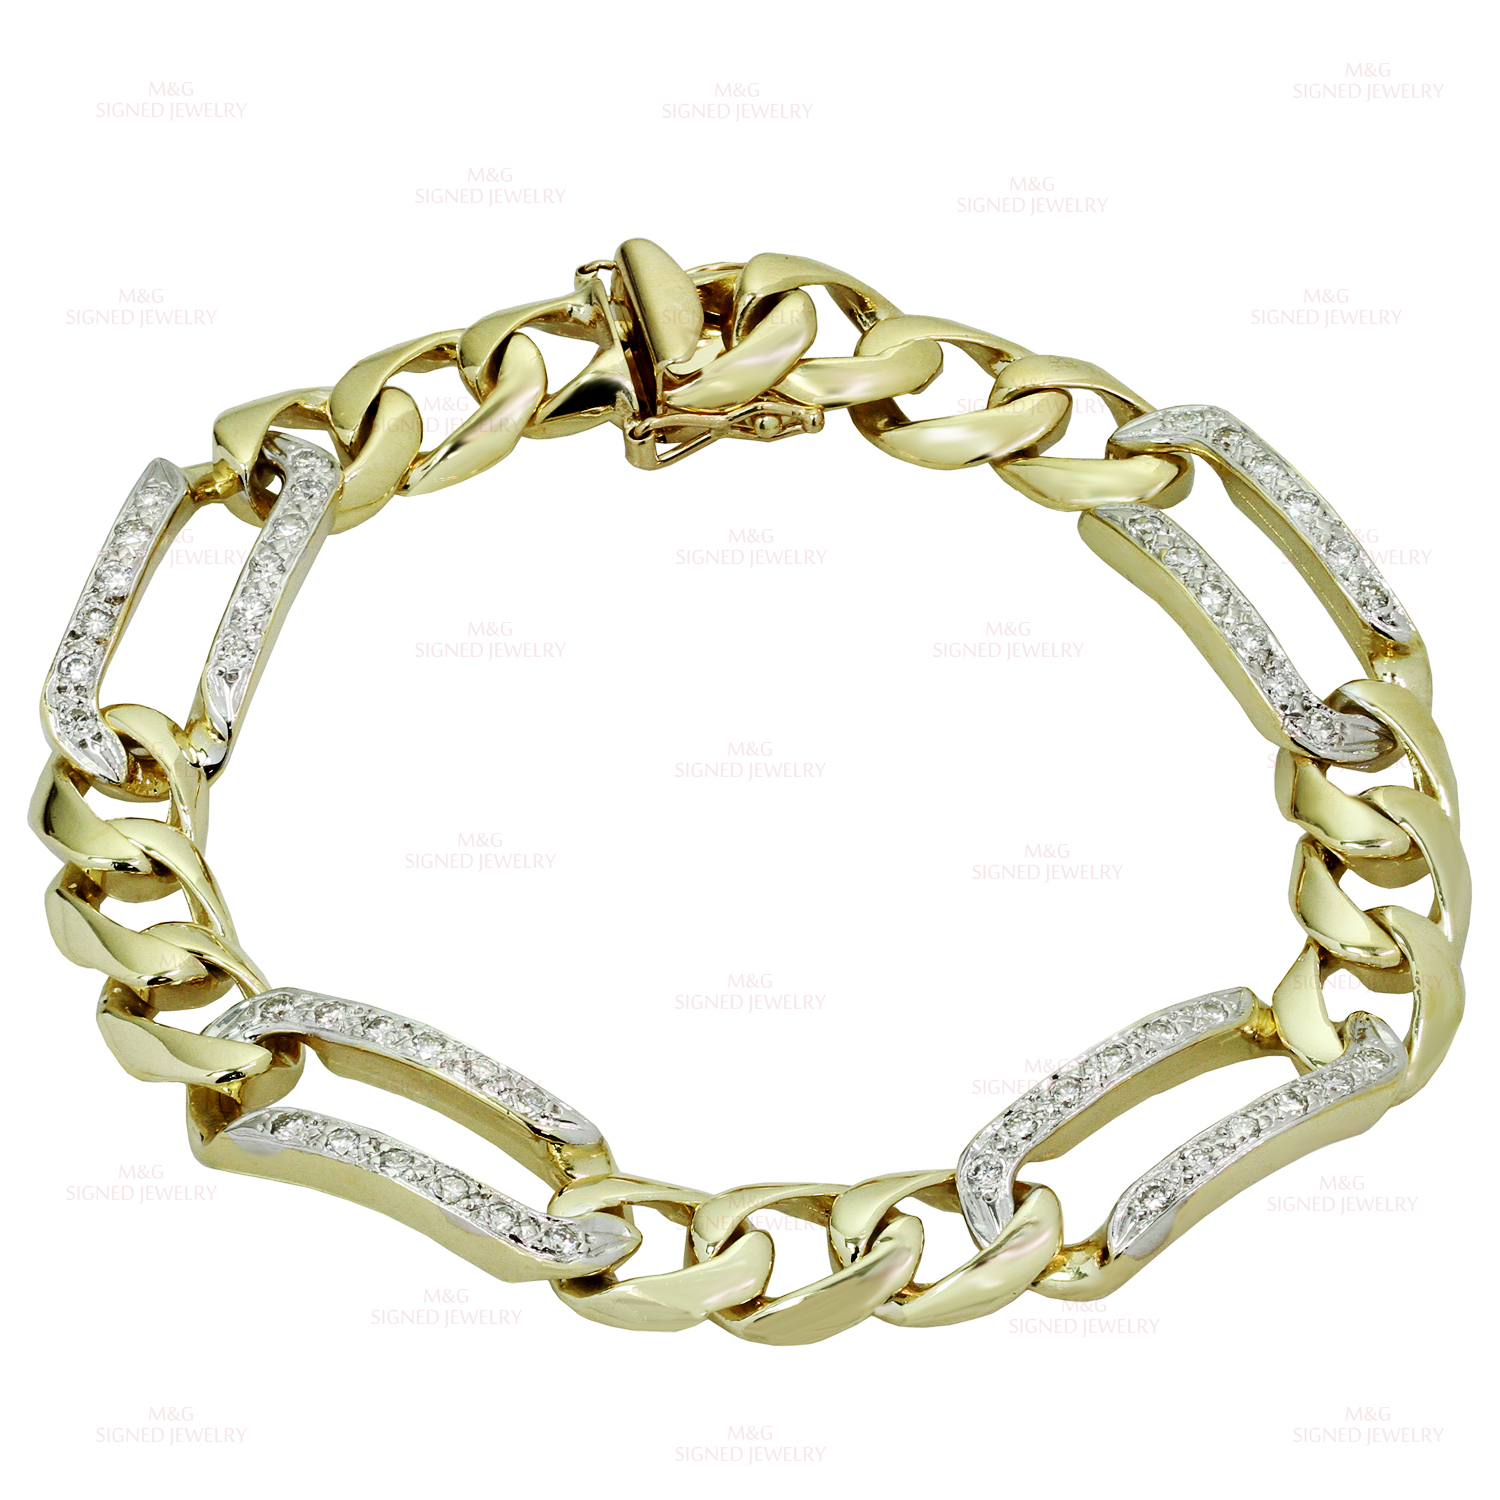 Classic Diamond 14k Yellow Gold Men's Figaro Link Bracelet